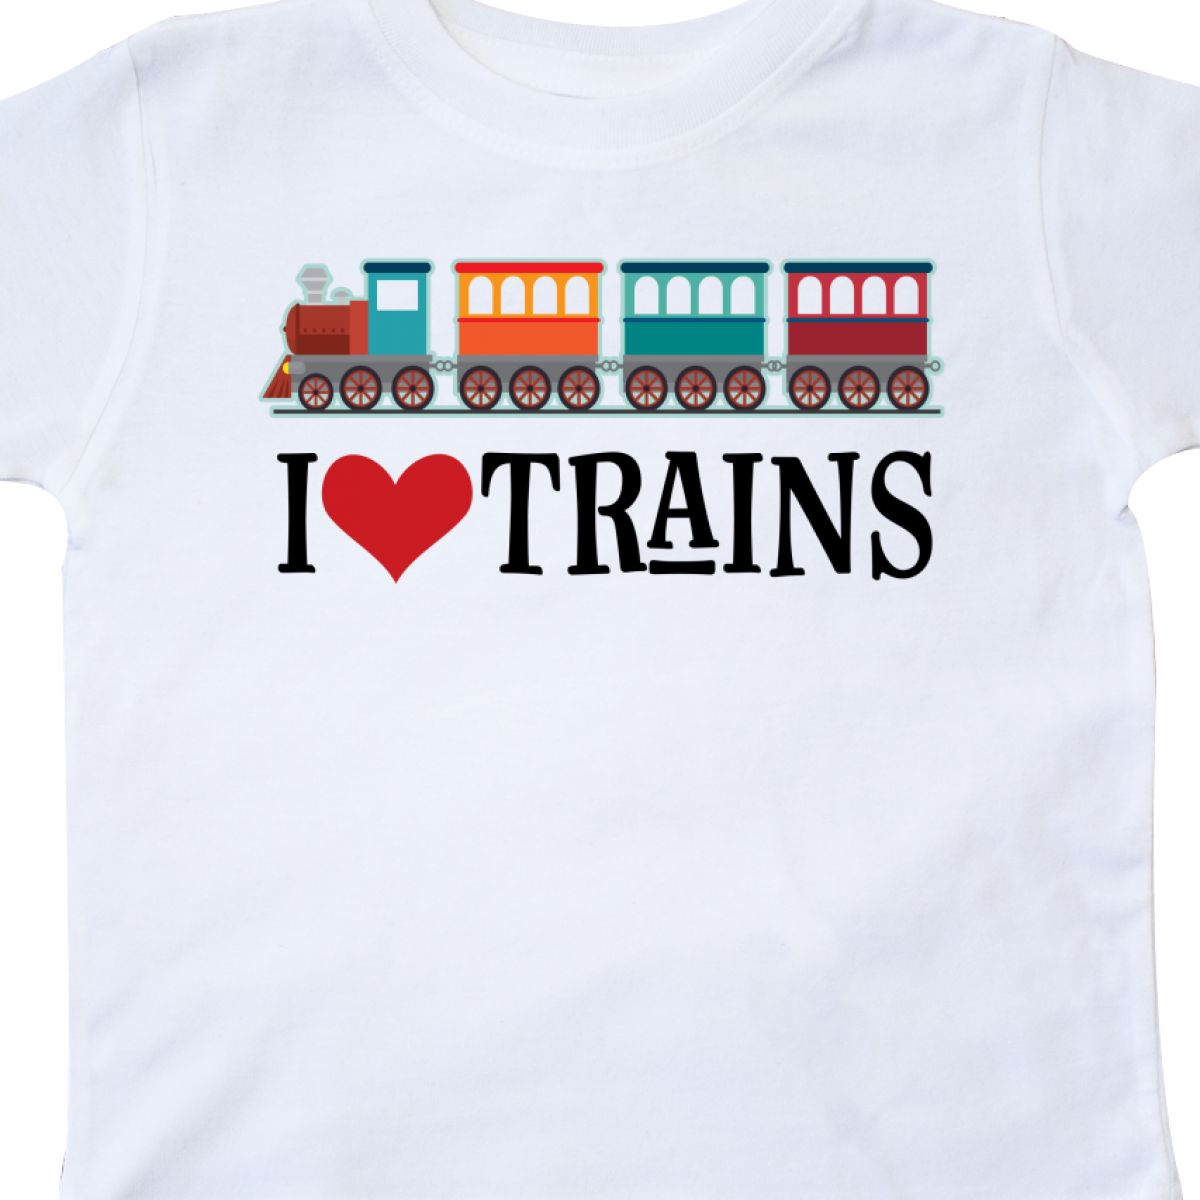 Inktastic-I-Love-Trains-Toddler-T-Shirt-Choo-Childs-Clothing-Apparel-Railfan-Set thumbnail 28